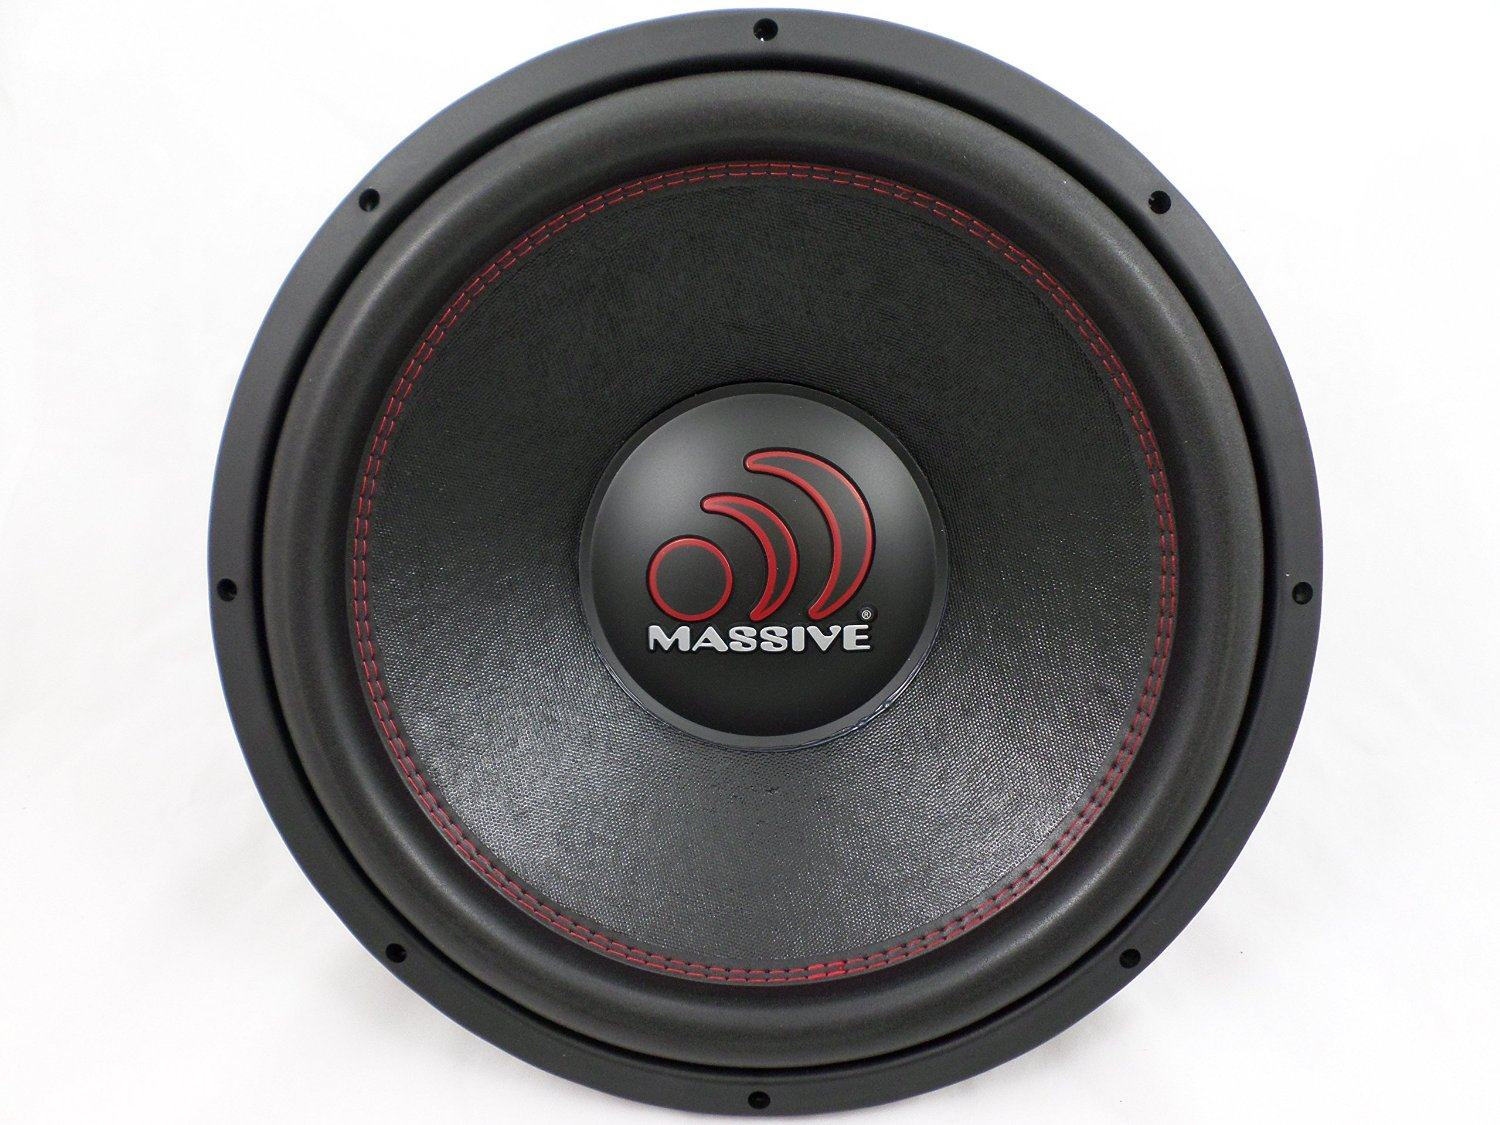 Massive Audio GTX154 15 inch Subwoofer - GTX Series 1400 Watt Subwoofer that Works Great as Competition Subwoofer! Dual 4 Ohm, 2.5 inch Voice Coil. Sold Individually.